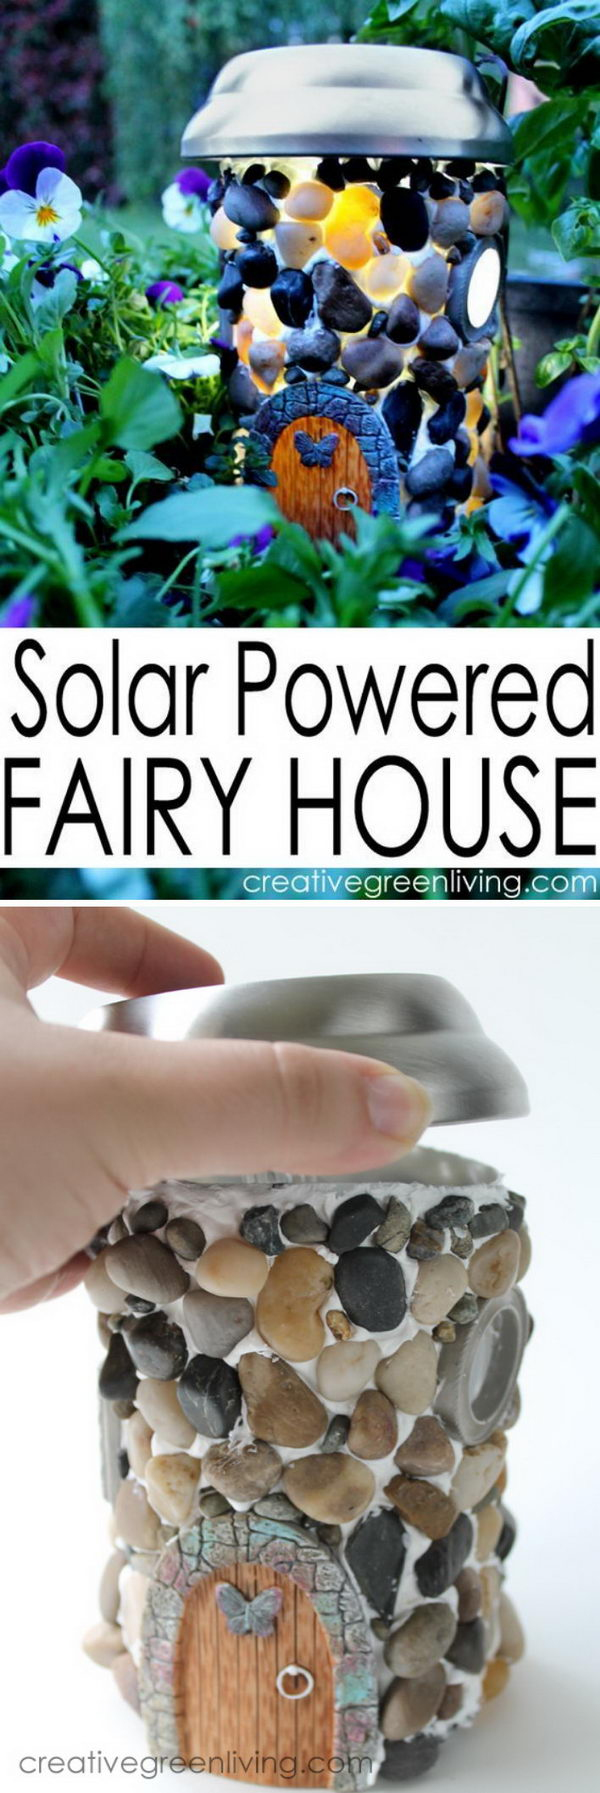 DIY Solar Powered Fairy House.